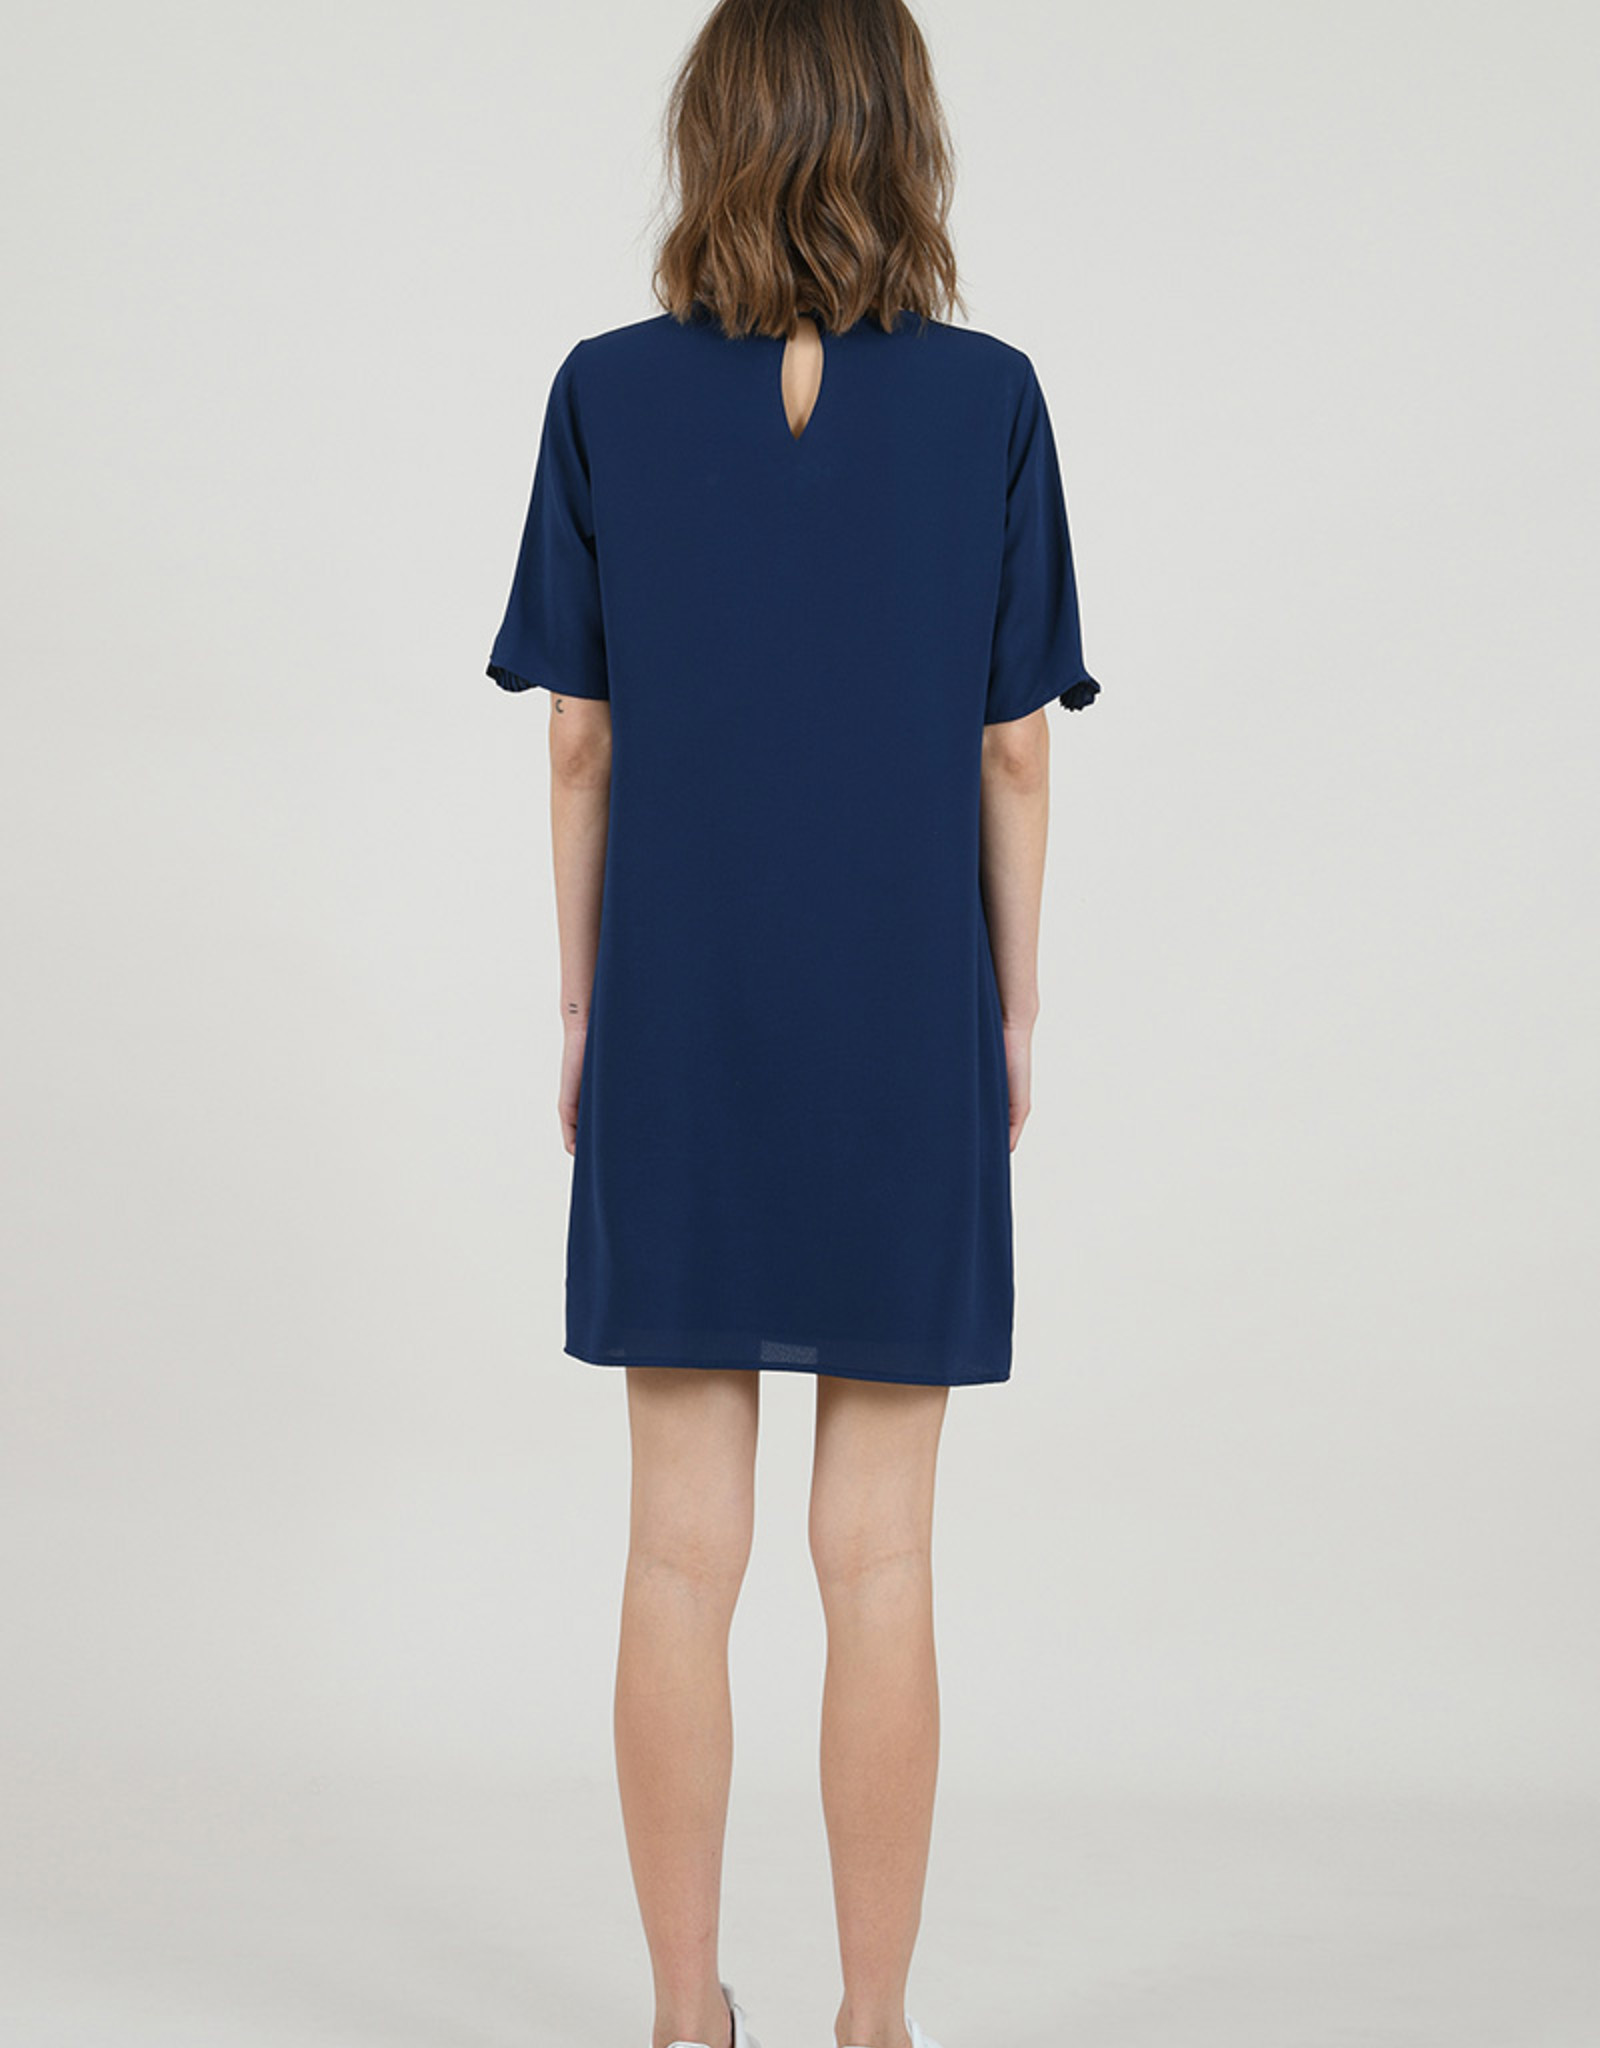 Molly Bracken Shift Dress with Pleated Details